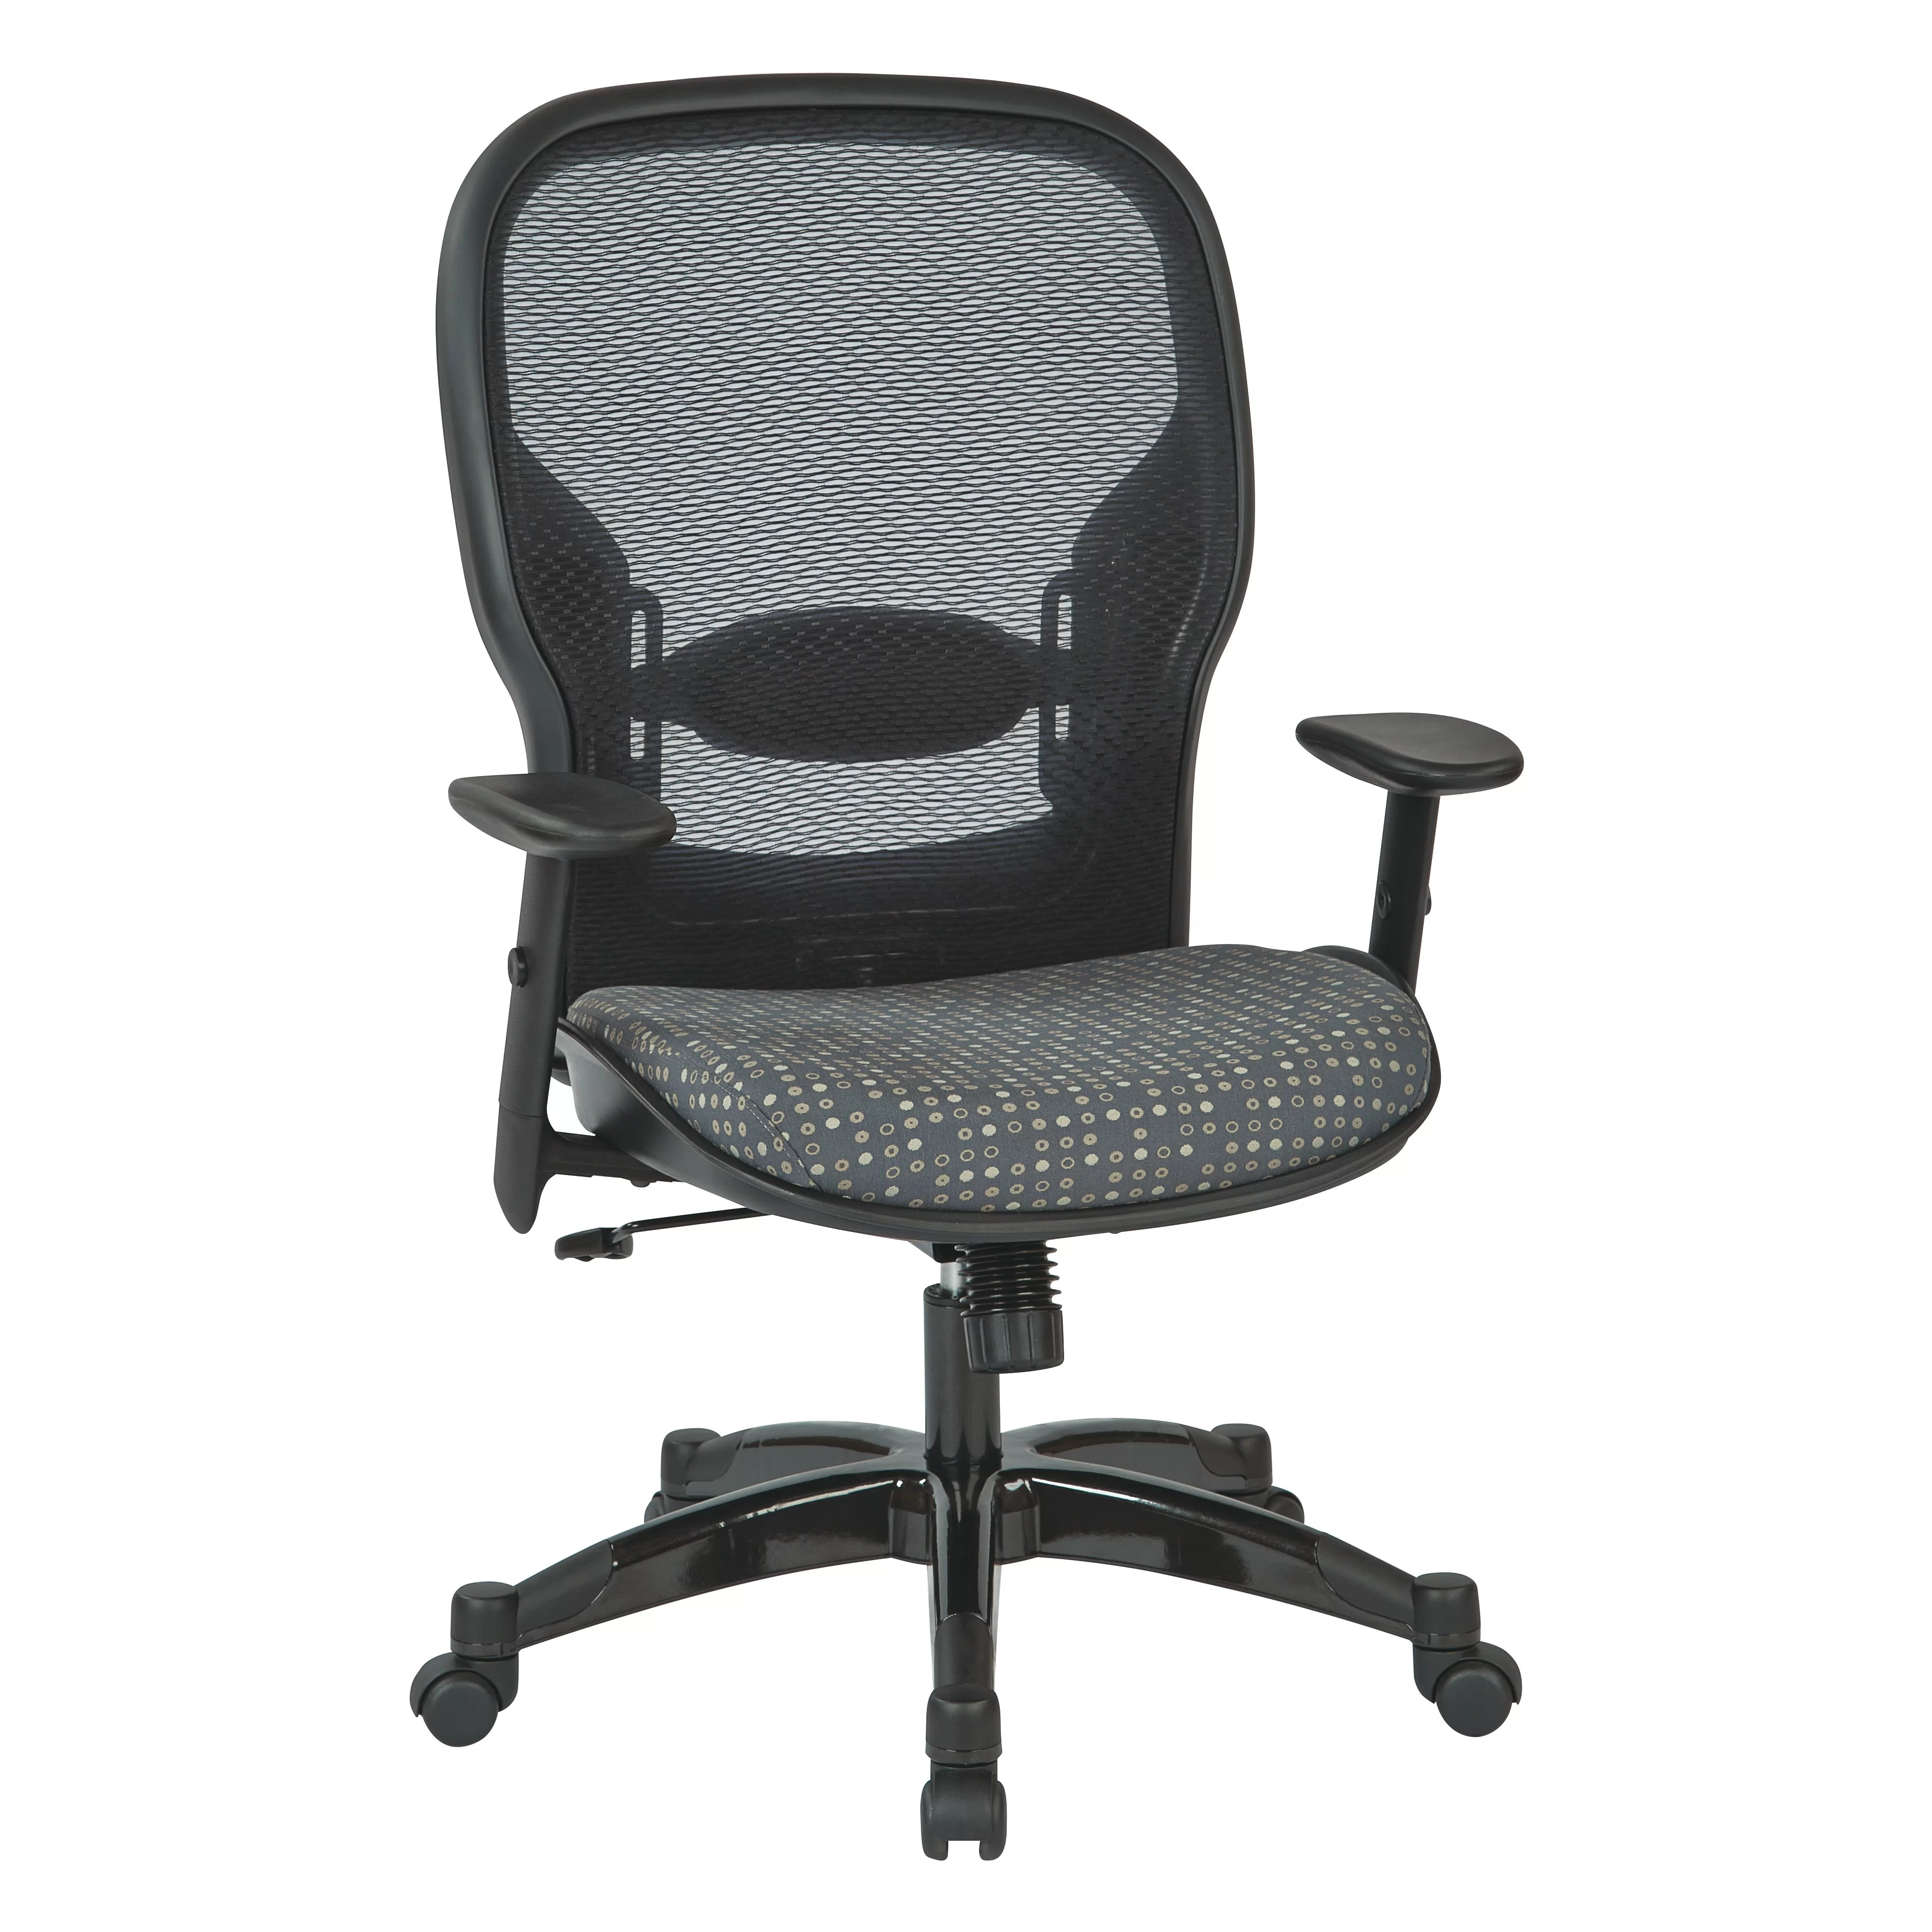 office star chairs folding chair covers cheap space seating high back mesh desk wayfair